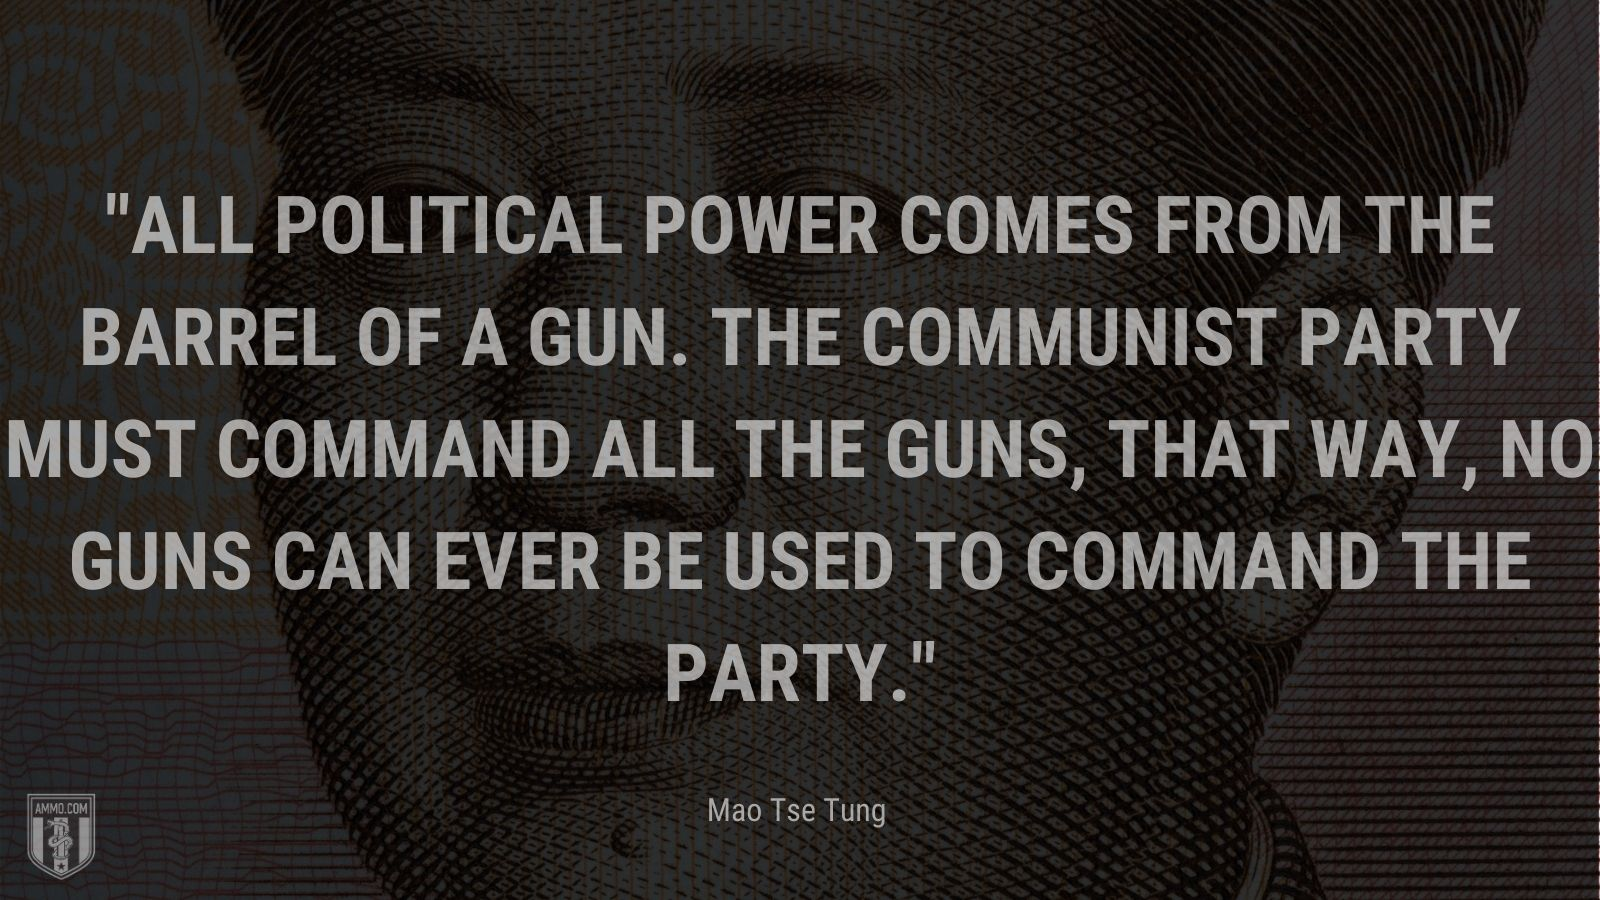 """""""All political power comes from the barrel of a gun. The communist party must command all the guns, that way, no guns can ever be used to command the party."""" - Mao Tse Tung"""